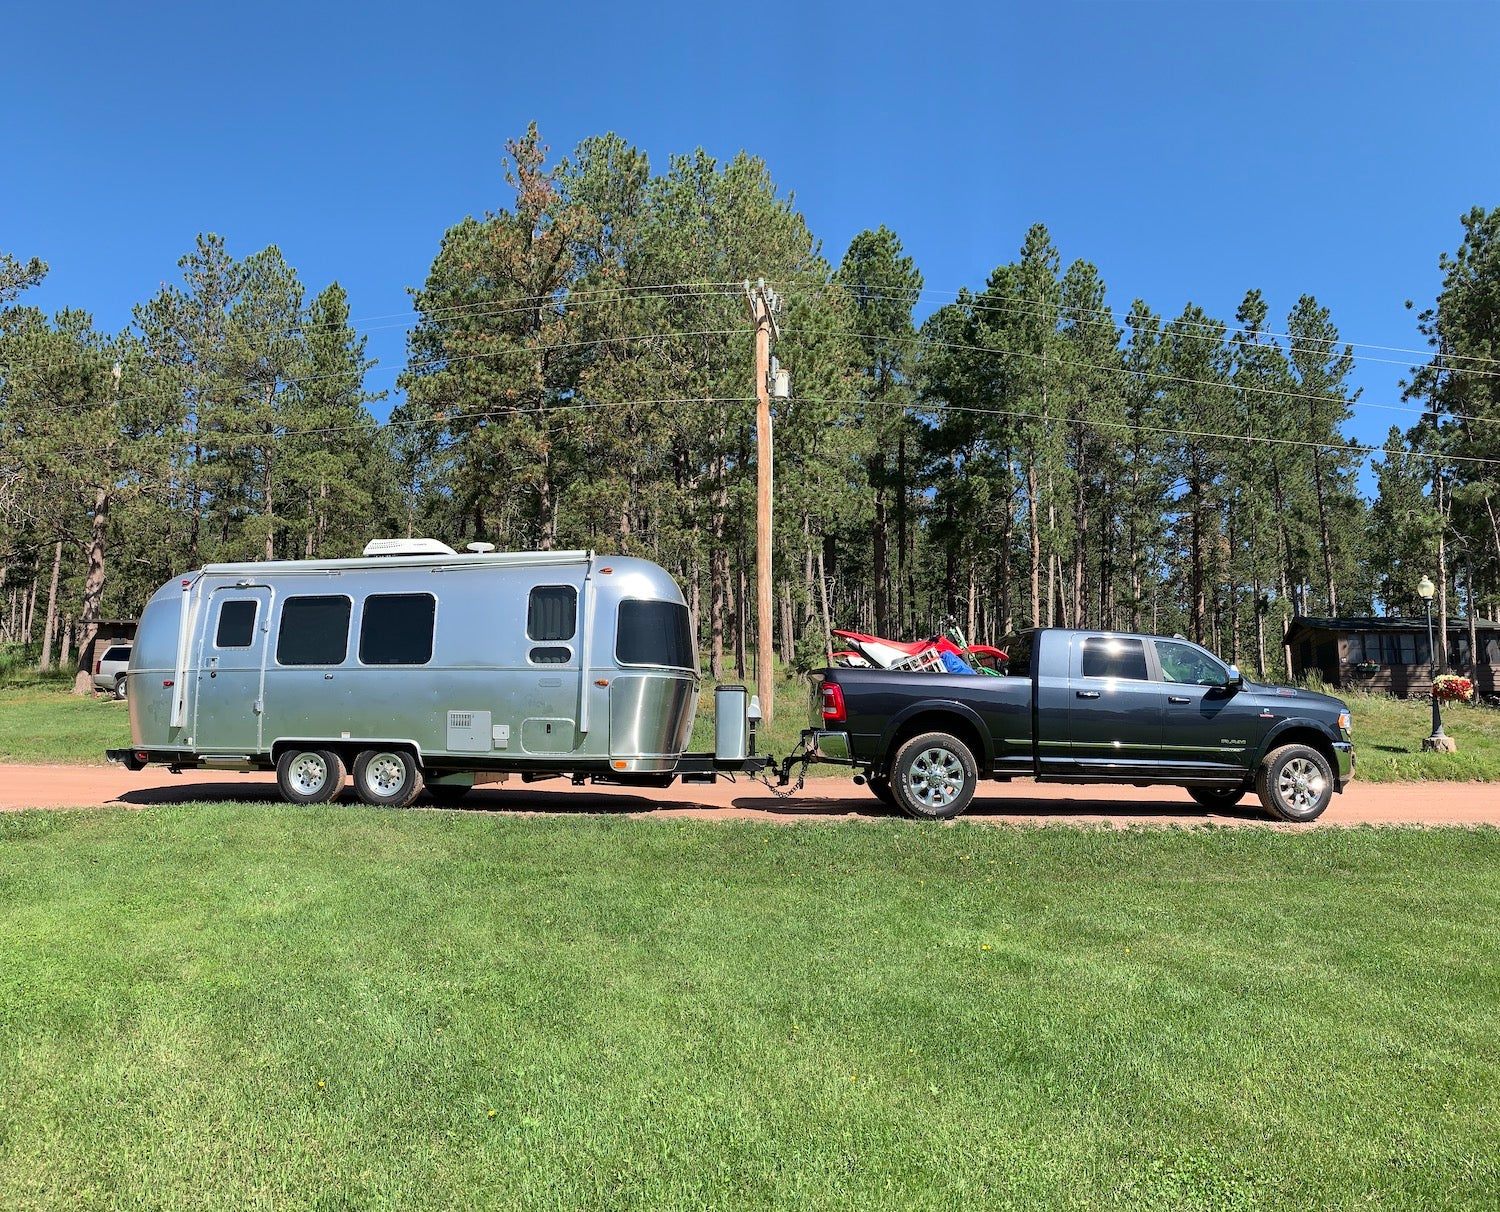 2019 Ram 2500 Hd Limited Diesel And Airstream Globetrotter 23 Review Capable Comfort